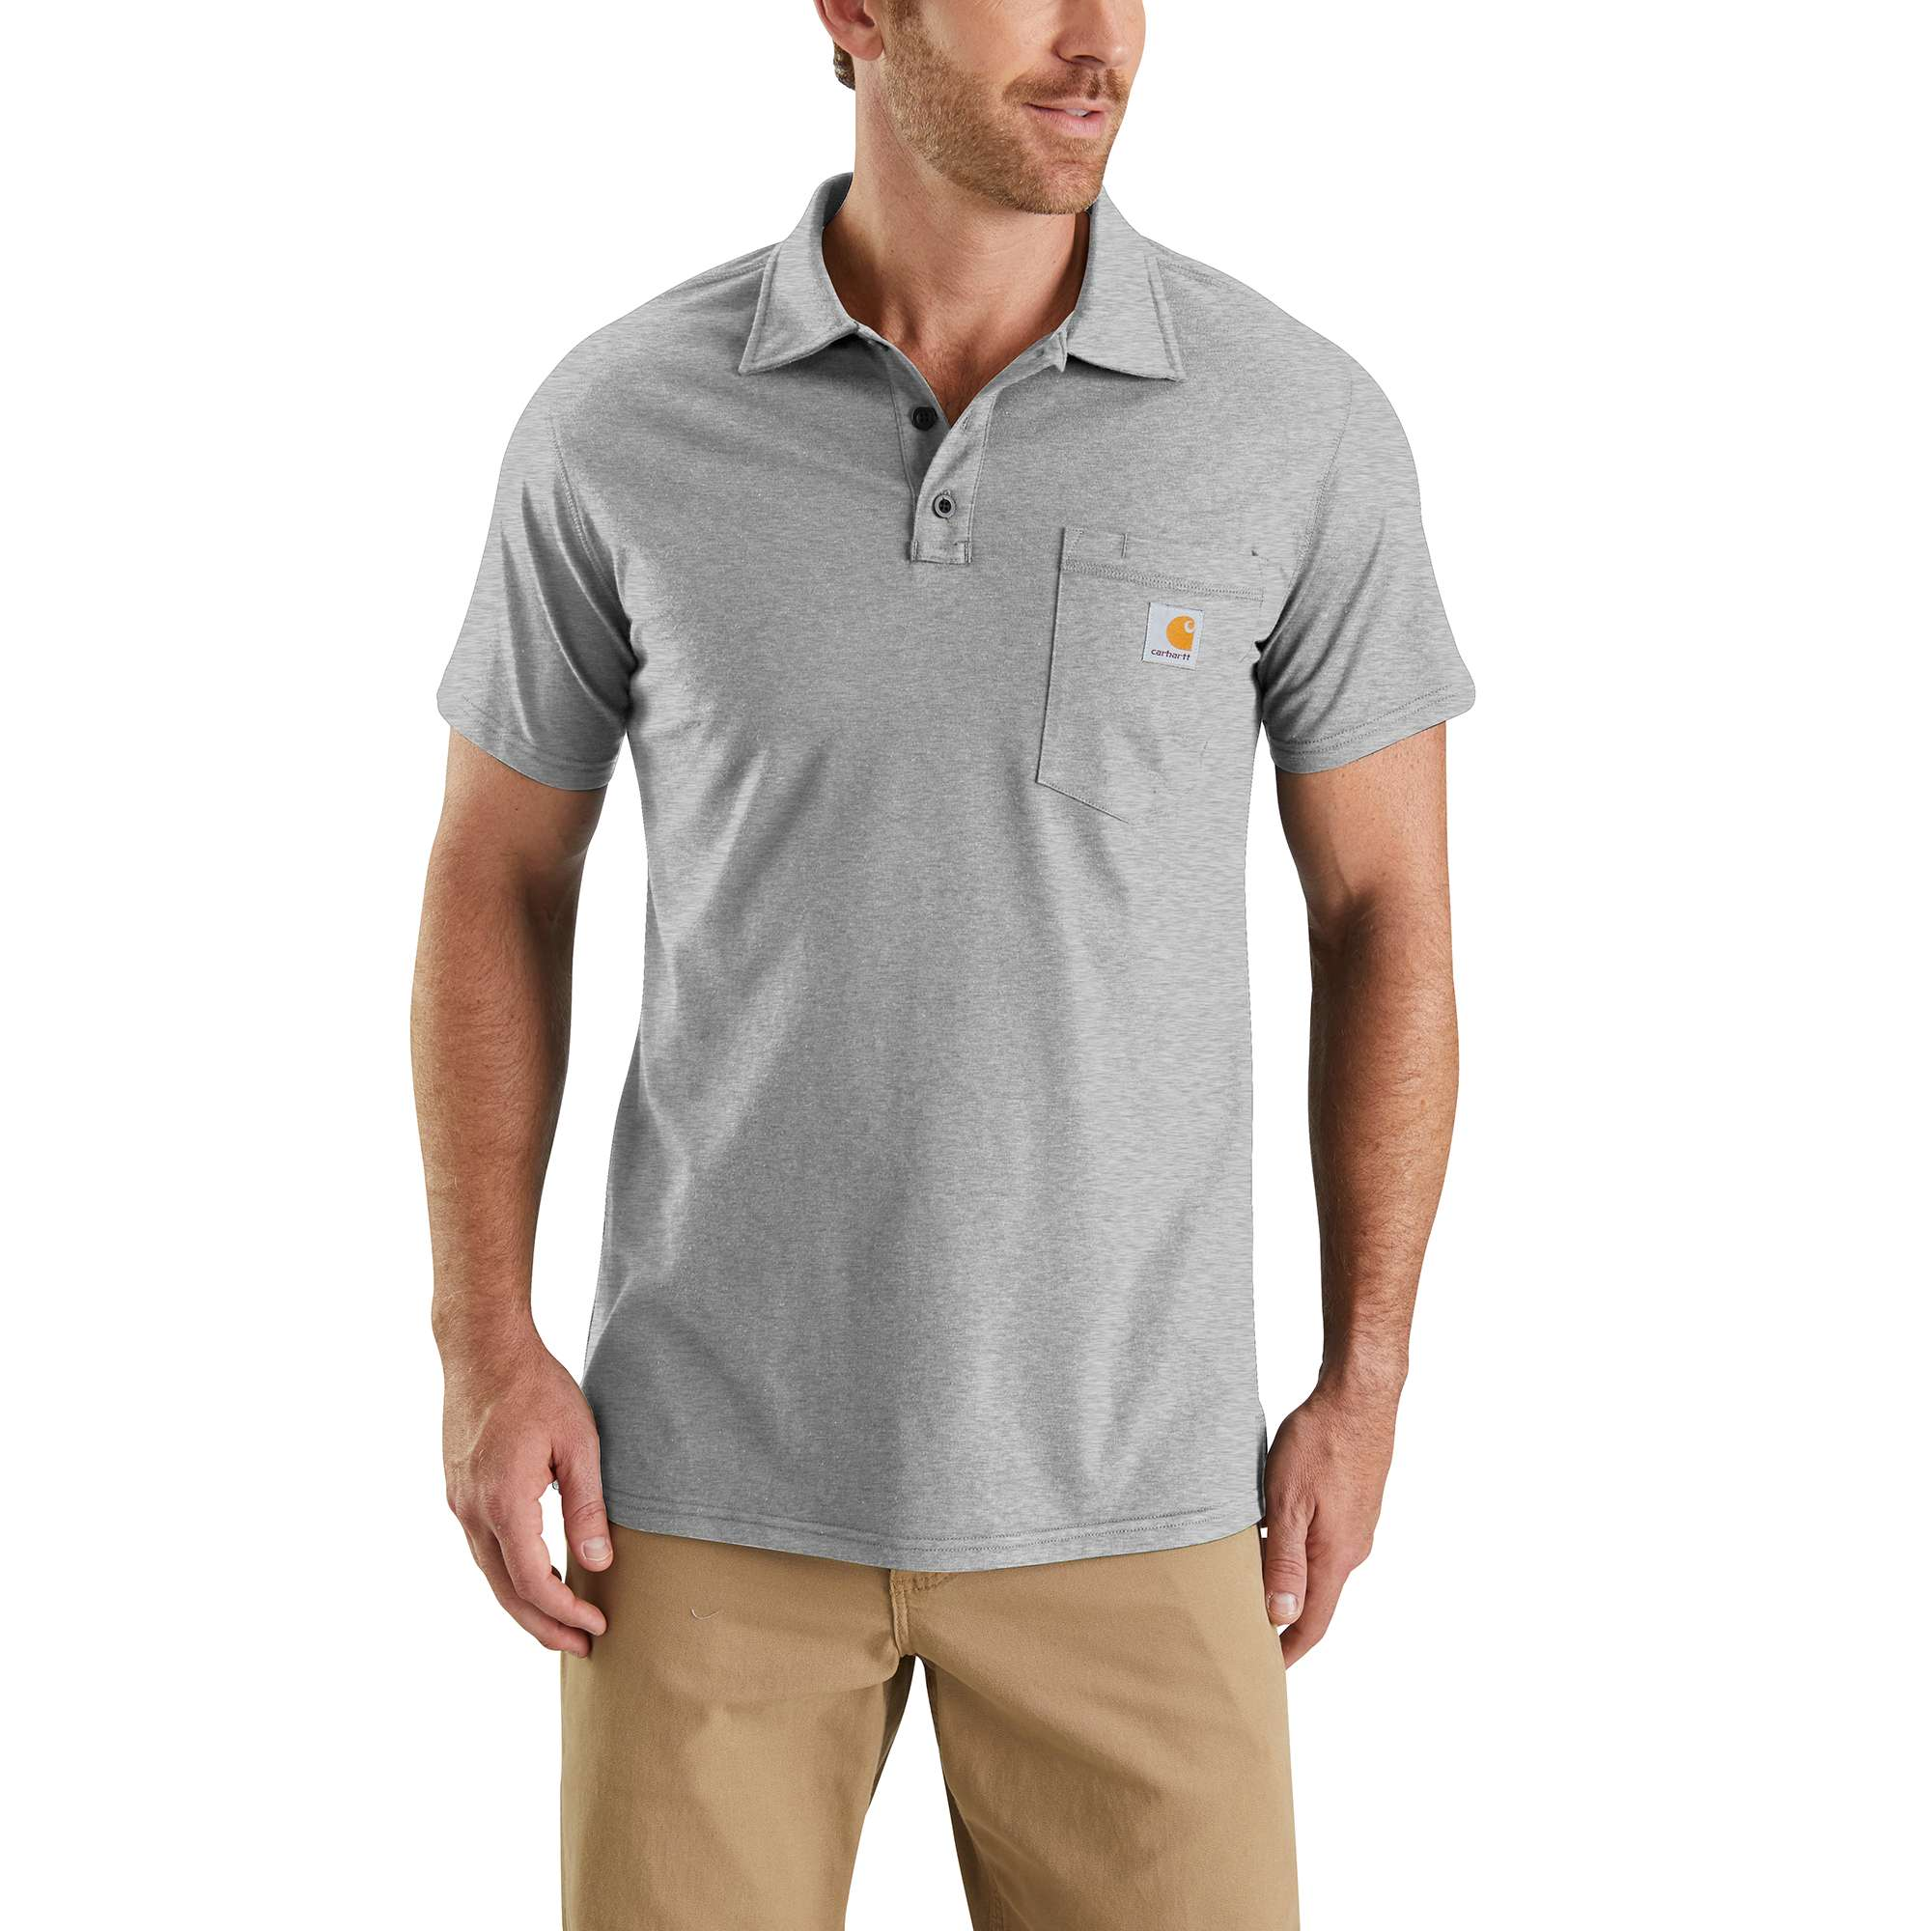 Men's Force Cotton Delmont Pocket Polo, Heather Gray, swatch